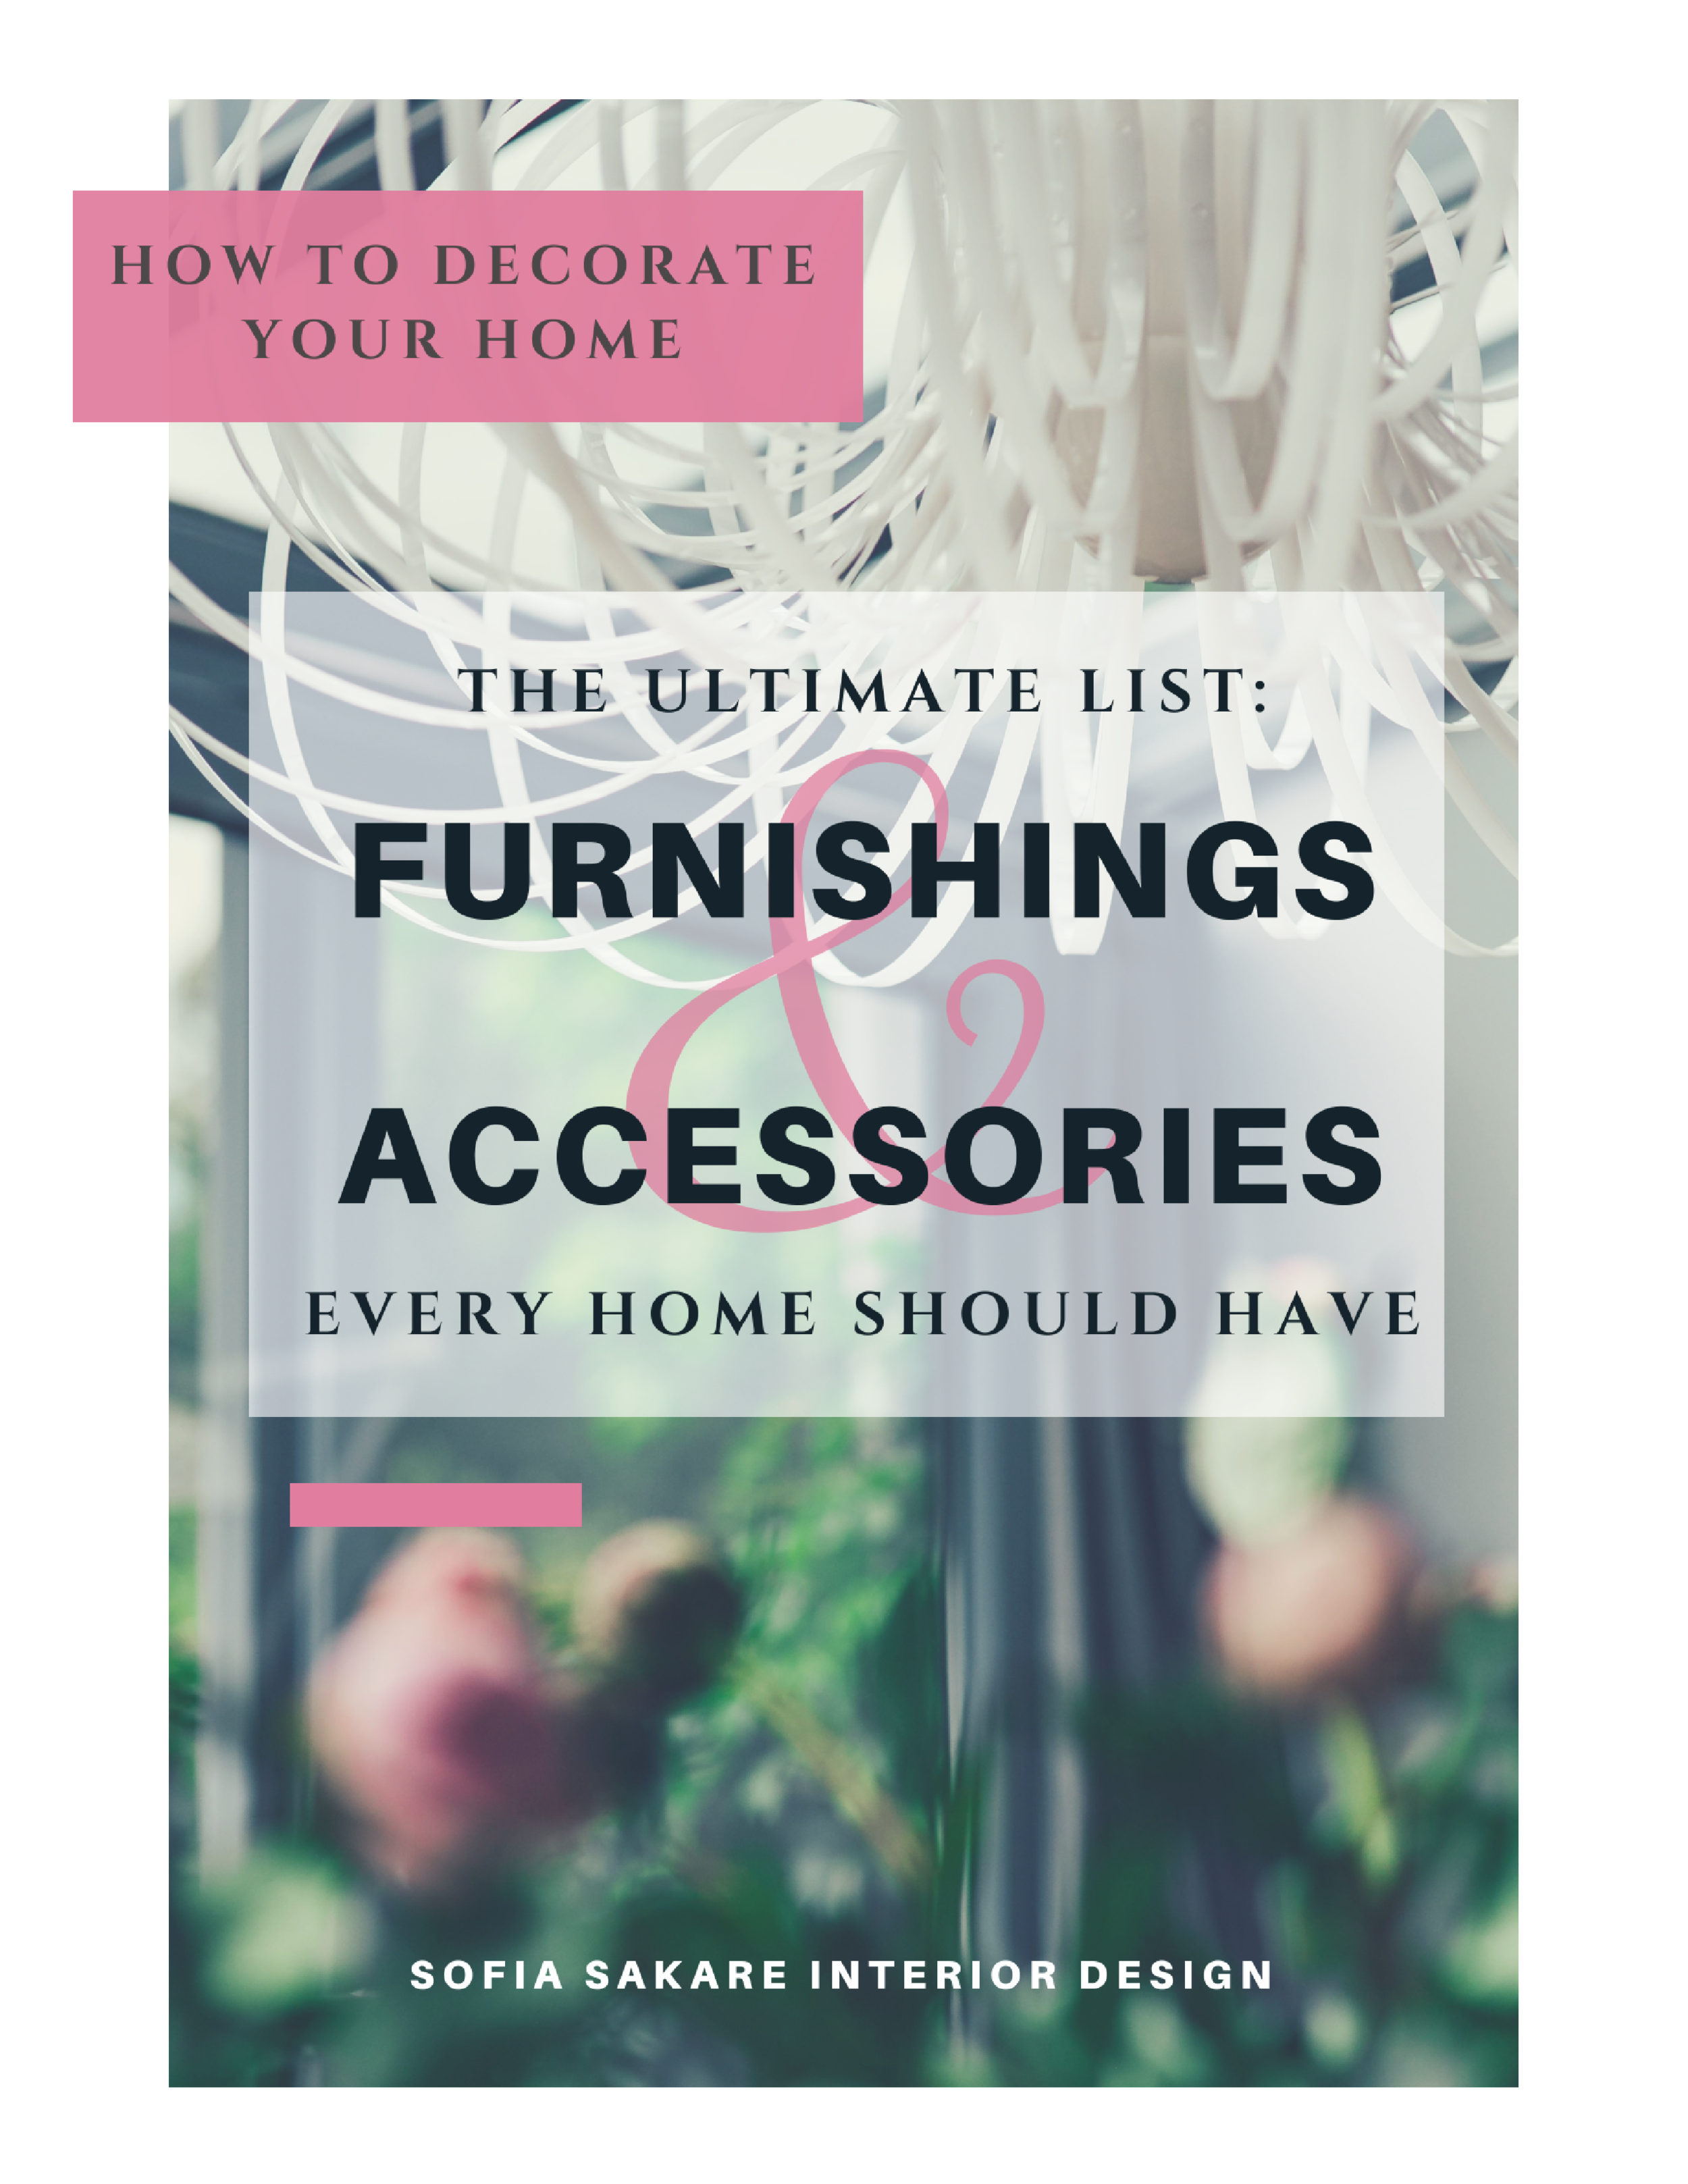 How to decorate your Home - the ultimate list of things every home should have